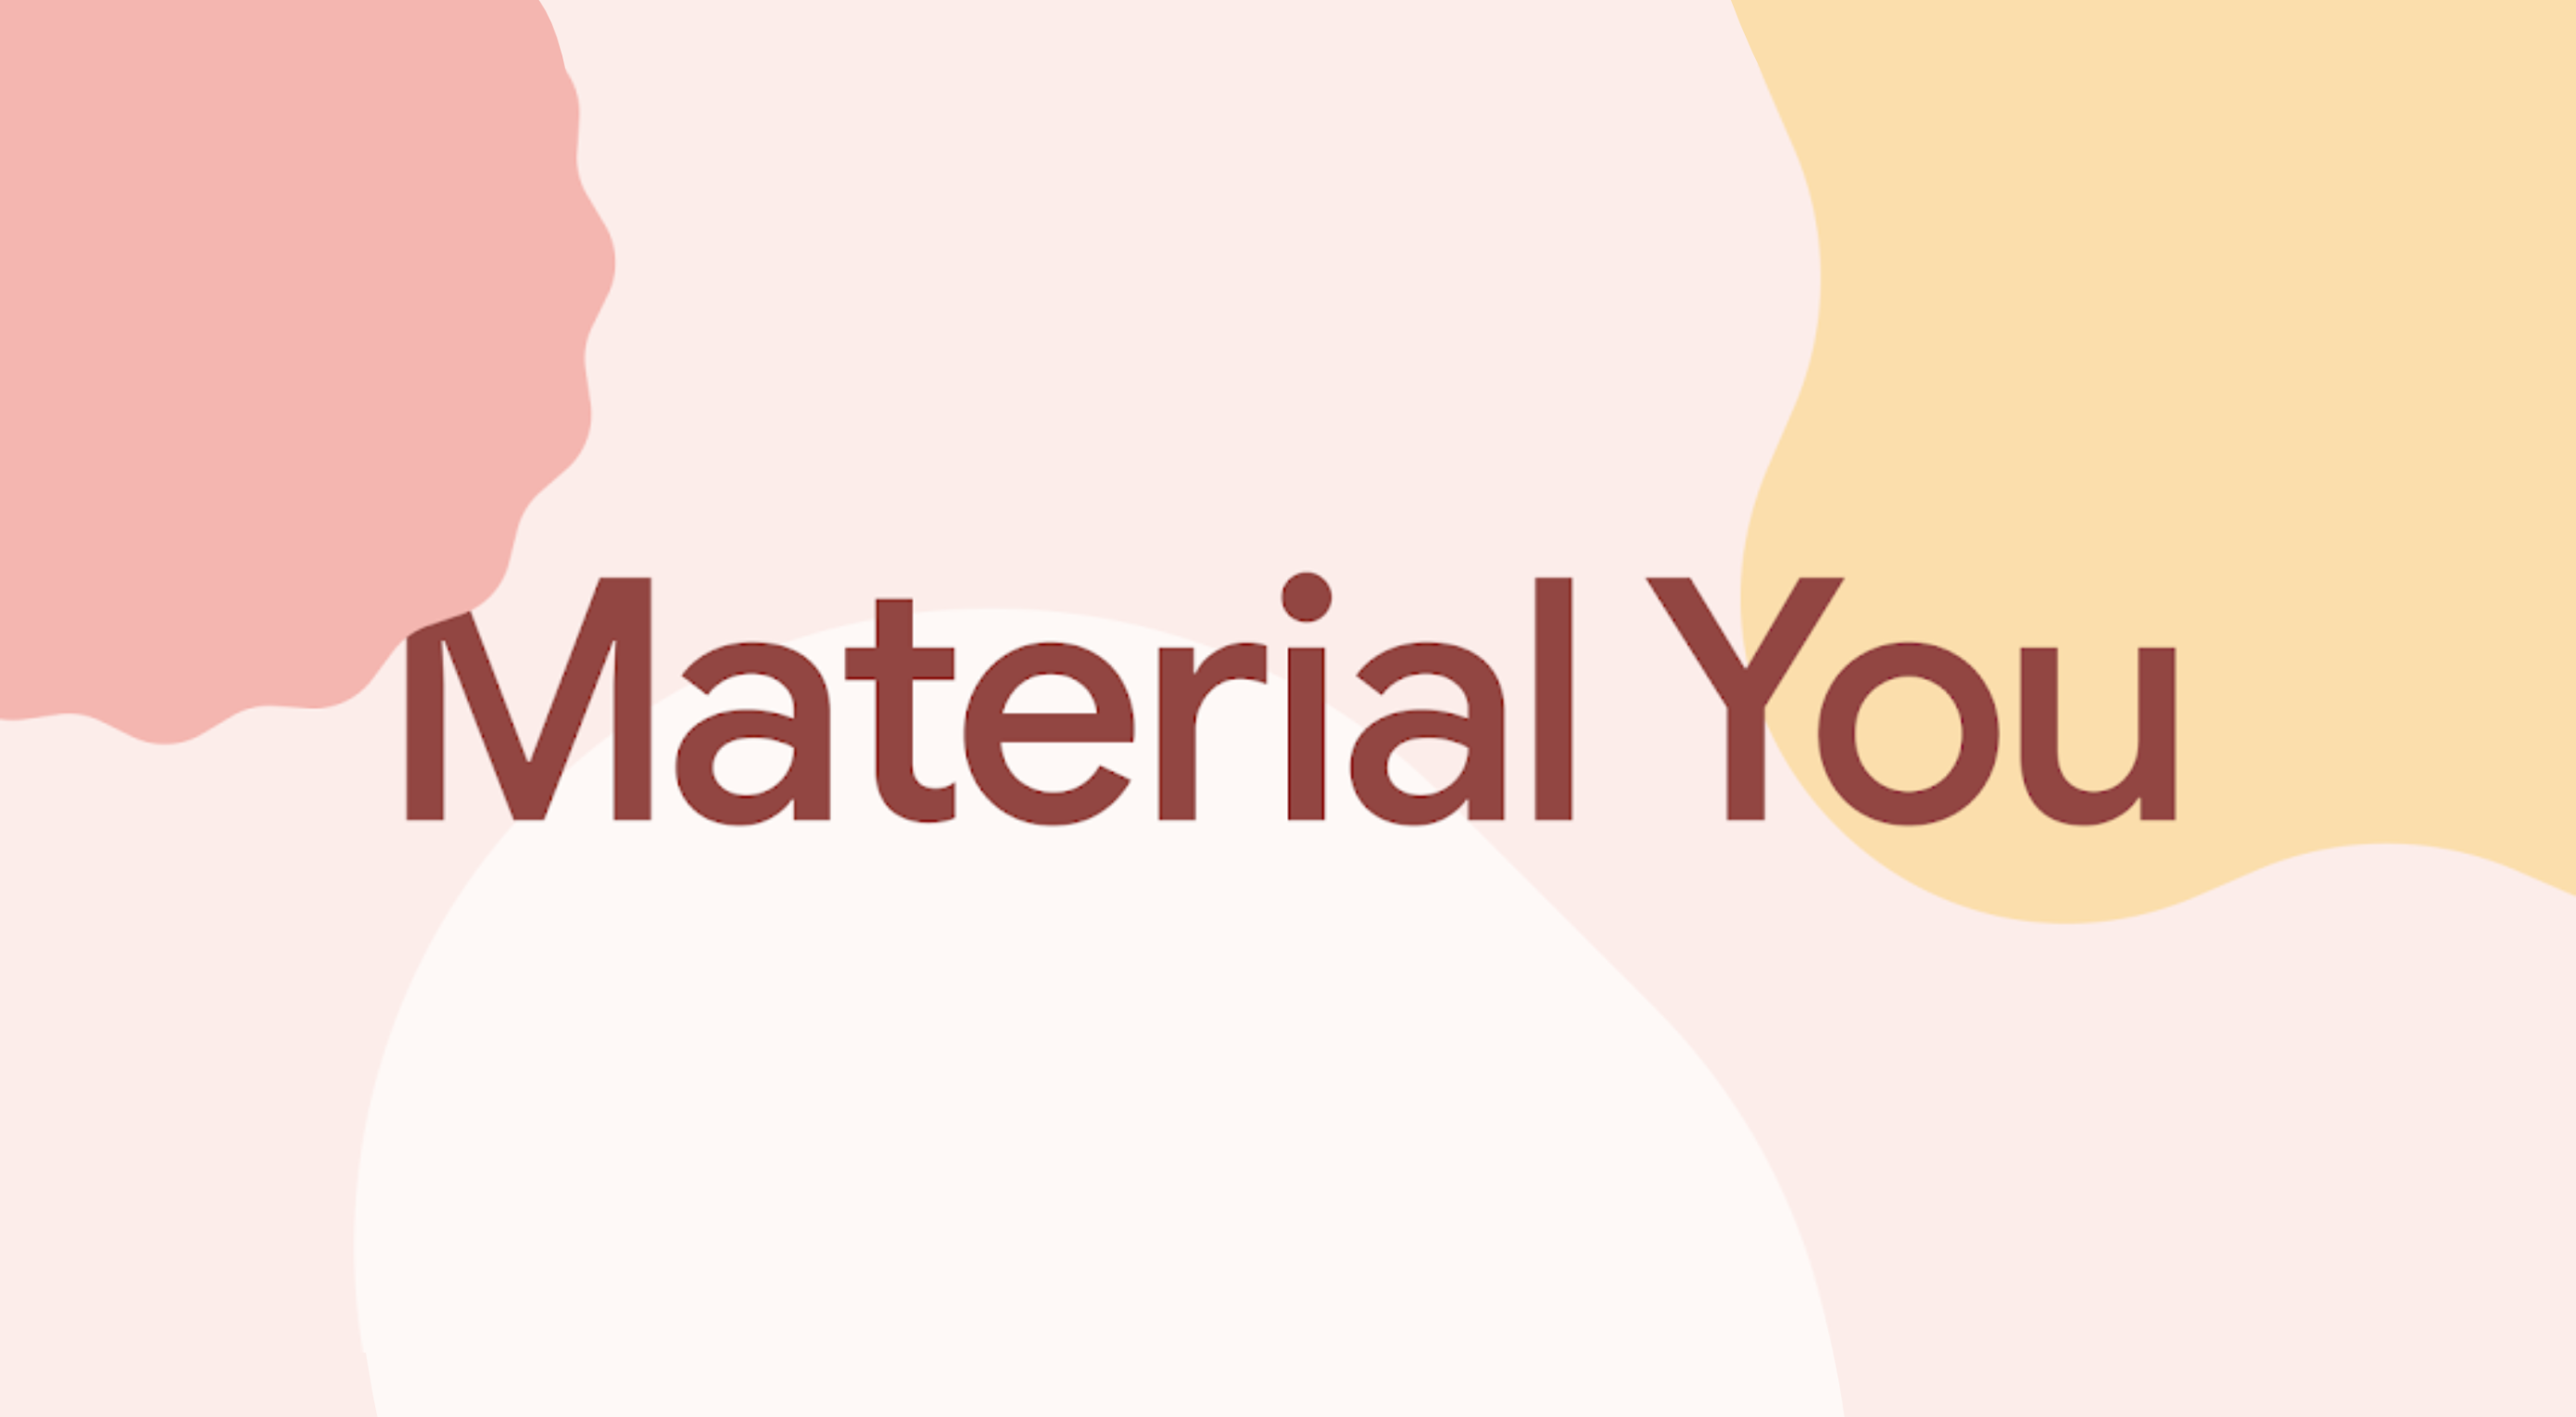 Poll: Will You Adopt Google's Material You?